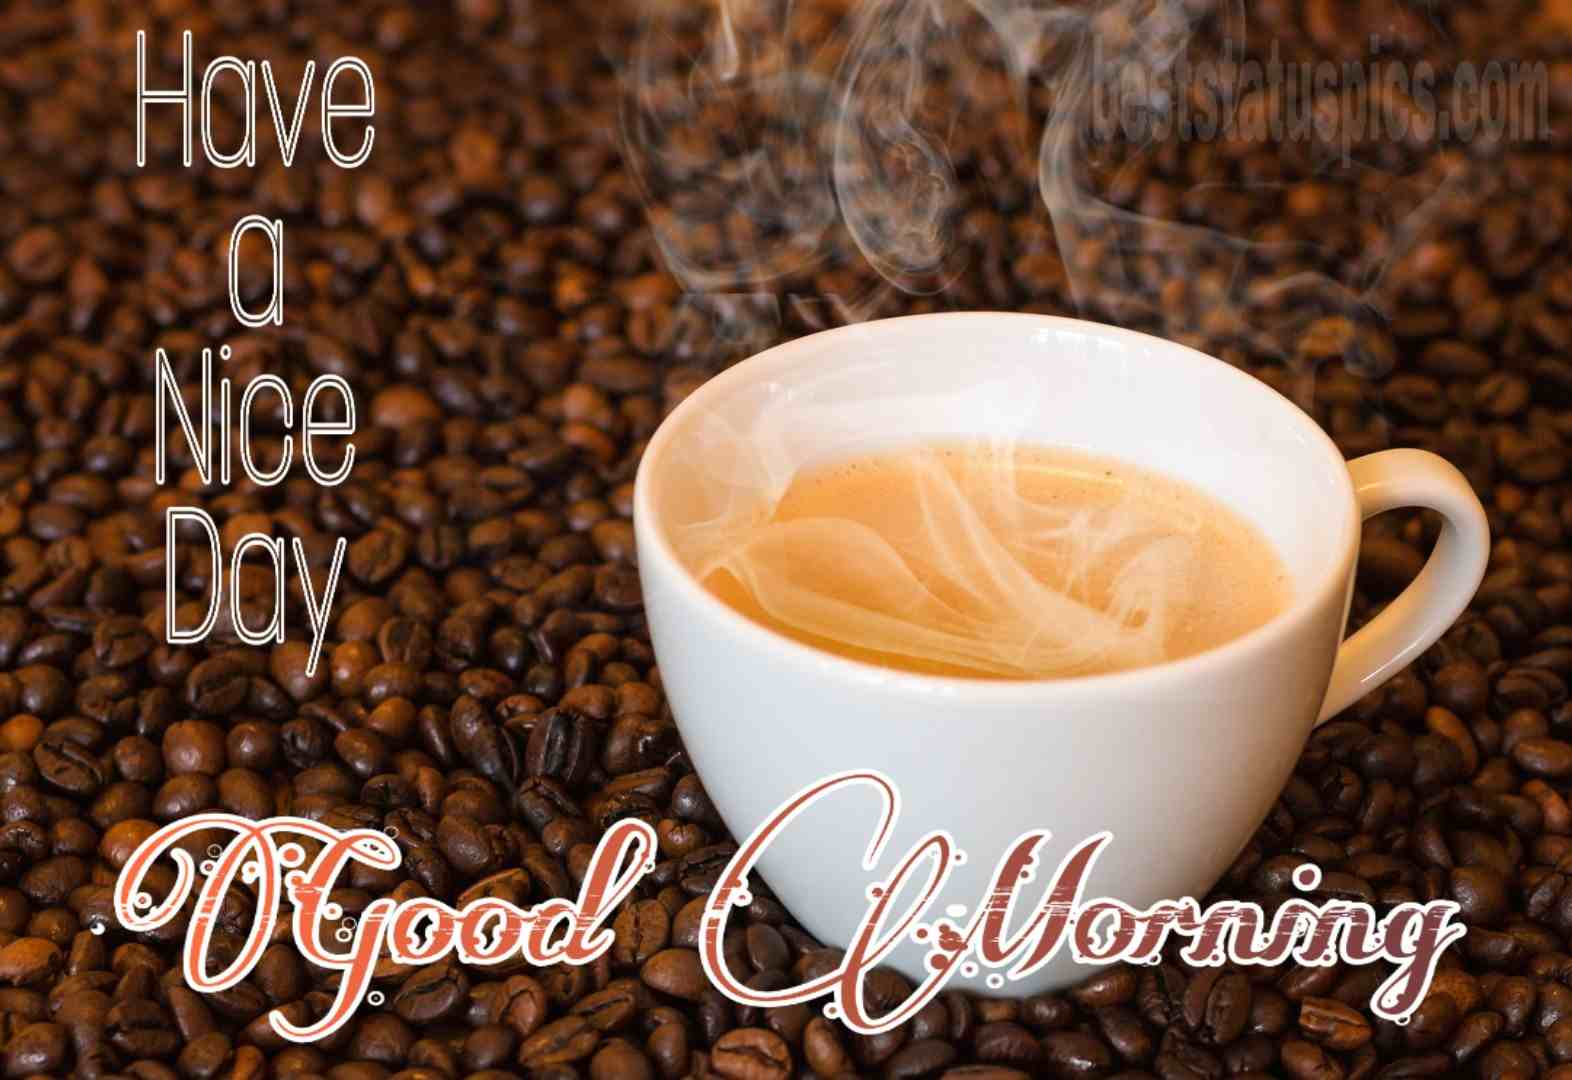 Good morning images with coffee for free download